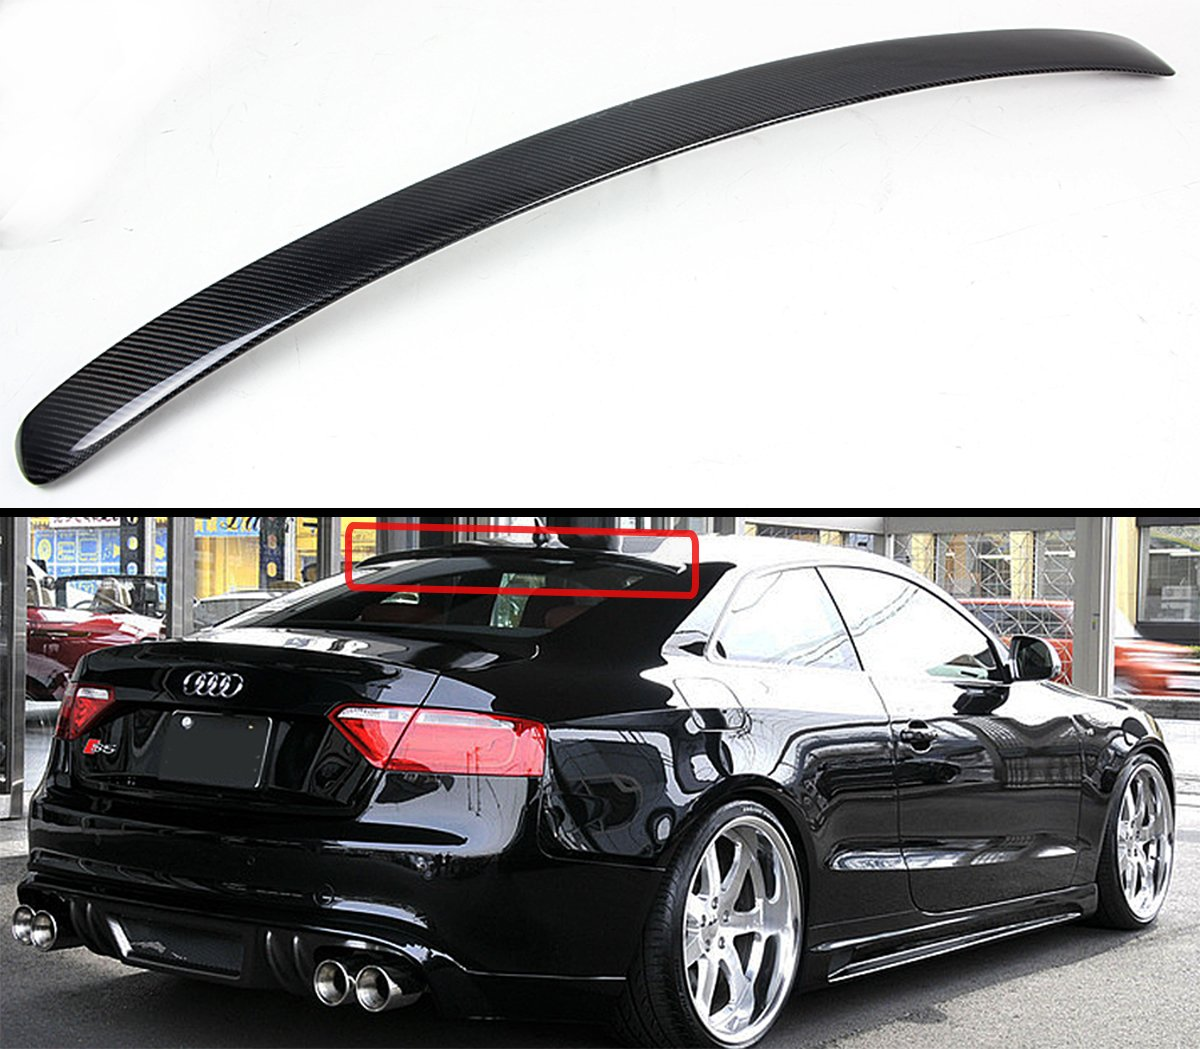 Cuztom Tuning Fits for 2009-2017 Audi A5 Quattro S5 RS5 VIP Carbon Fiber Rear Roof Window Spoiler Wing